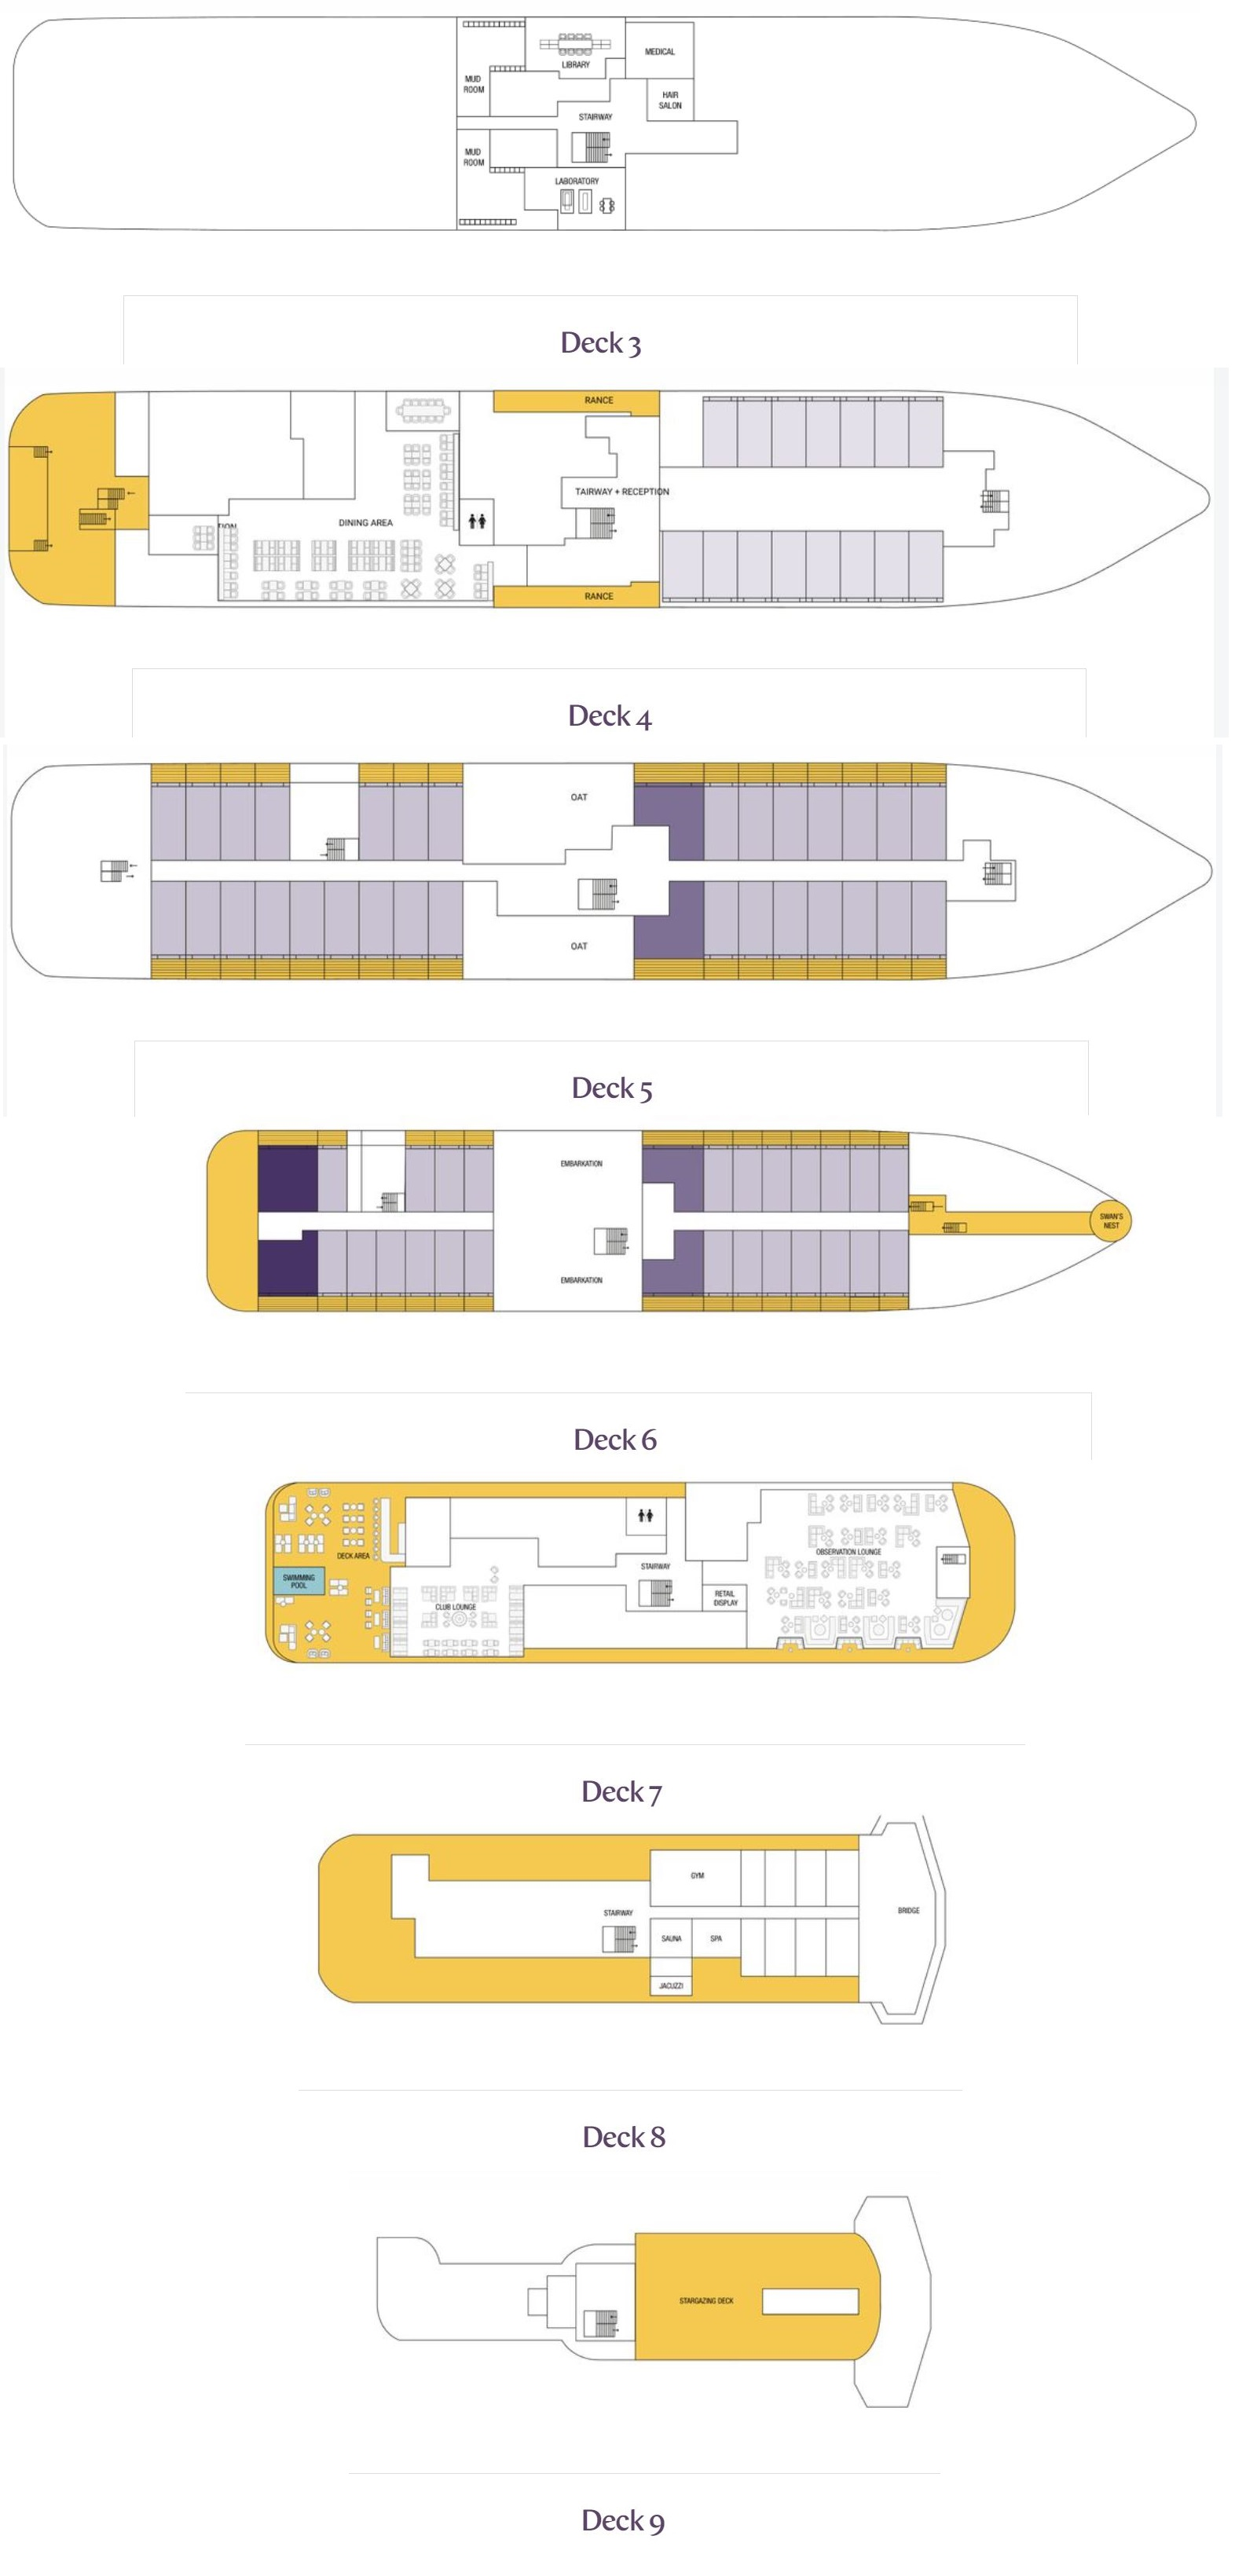 Cabin layout for Vega